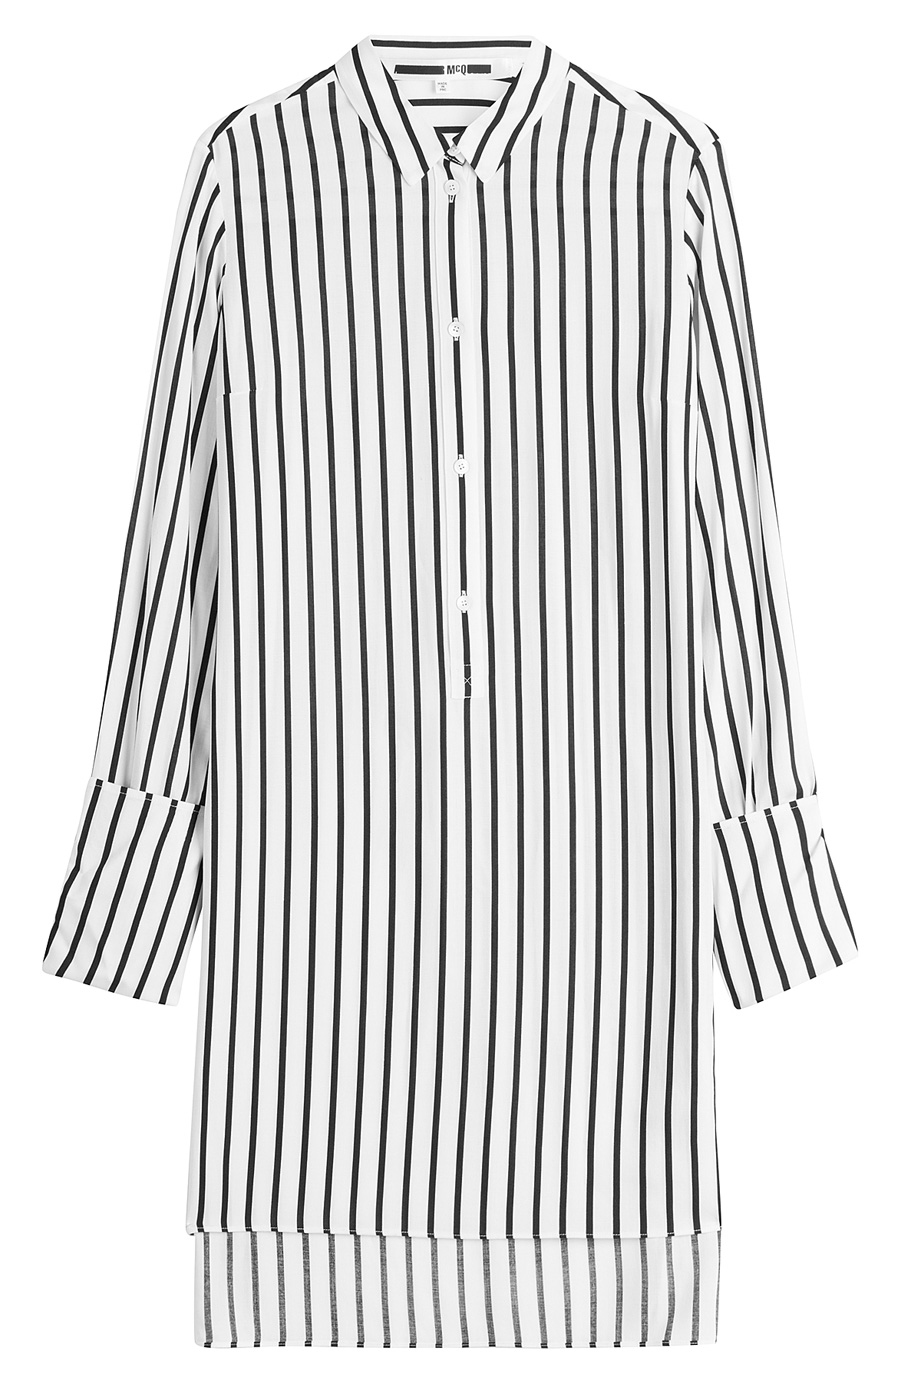 MCQ ALEXANDER MCQUEEN STRIPED TUNIC SHIRT